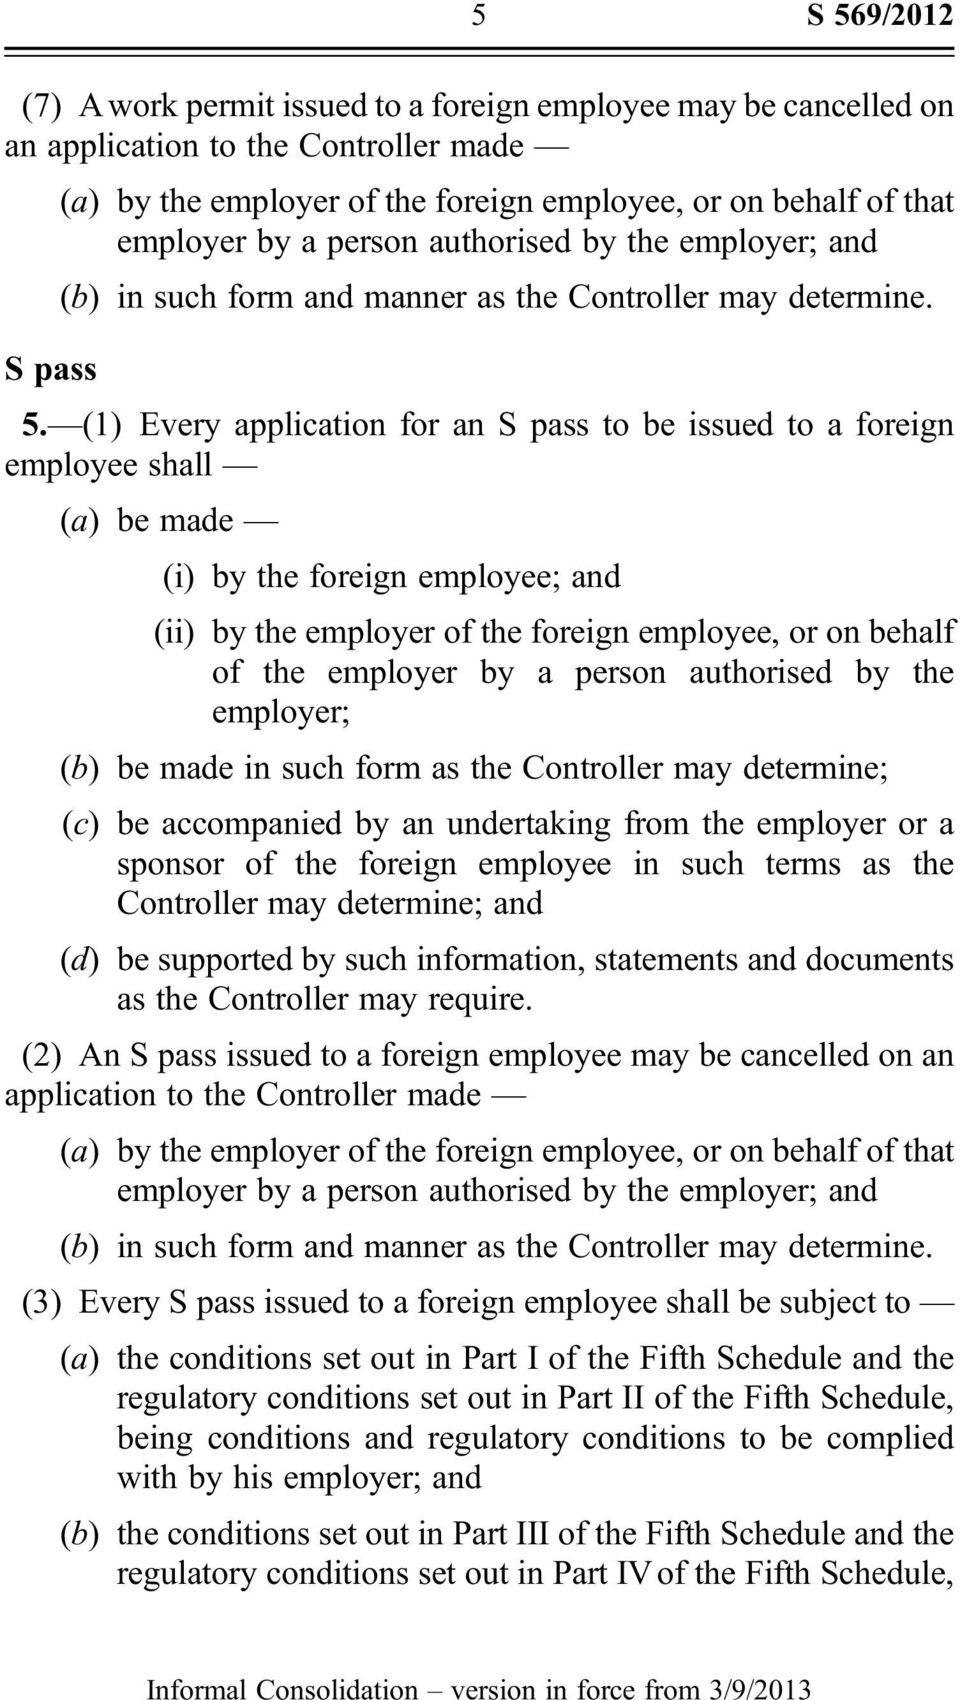 (1) Every application for an S pass to be issued to a foreign employee shall (a) be made (i) by the foreign employee; and (ii) by the employer of the foreign employee, or on behalf of the employer by